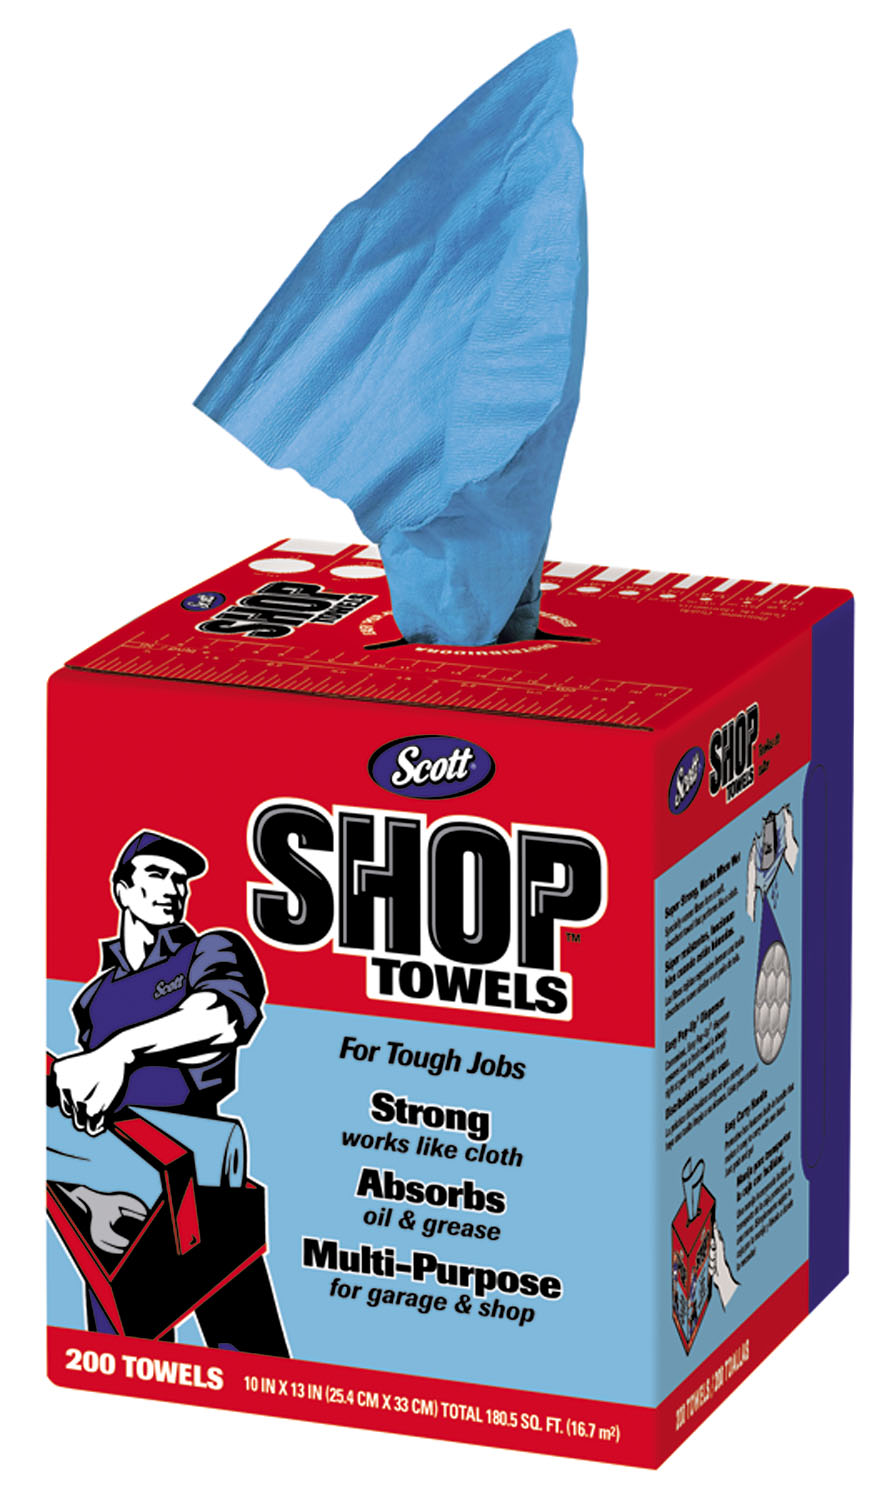 Bogo Car Deals >> Absorbent Blue Shop Towels in a Box for Home or Work at National Tool Warehouse